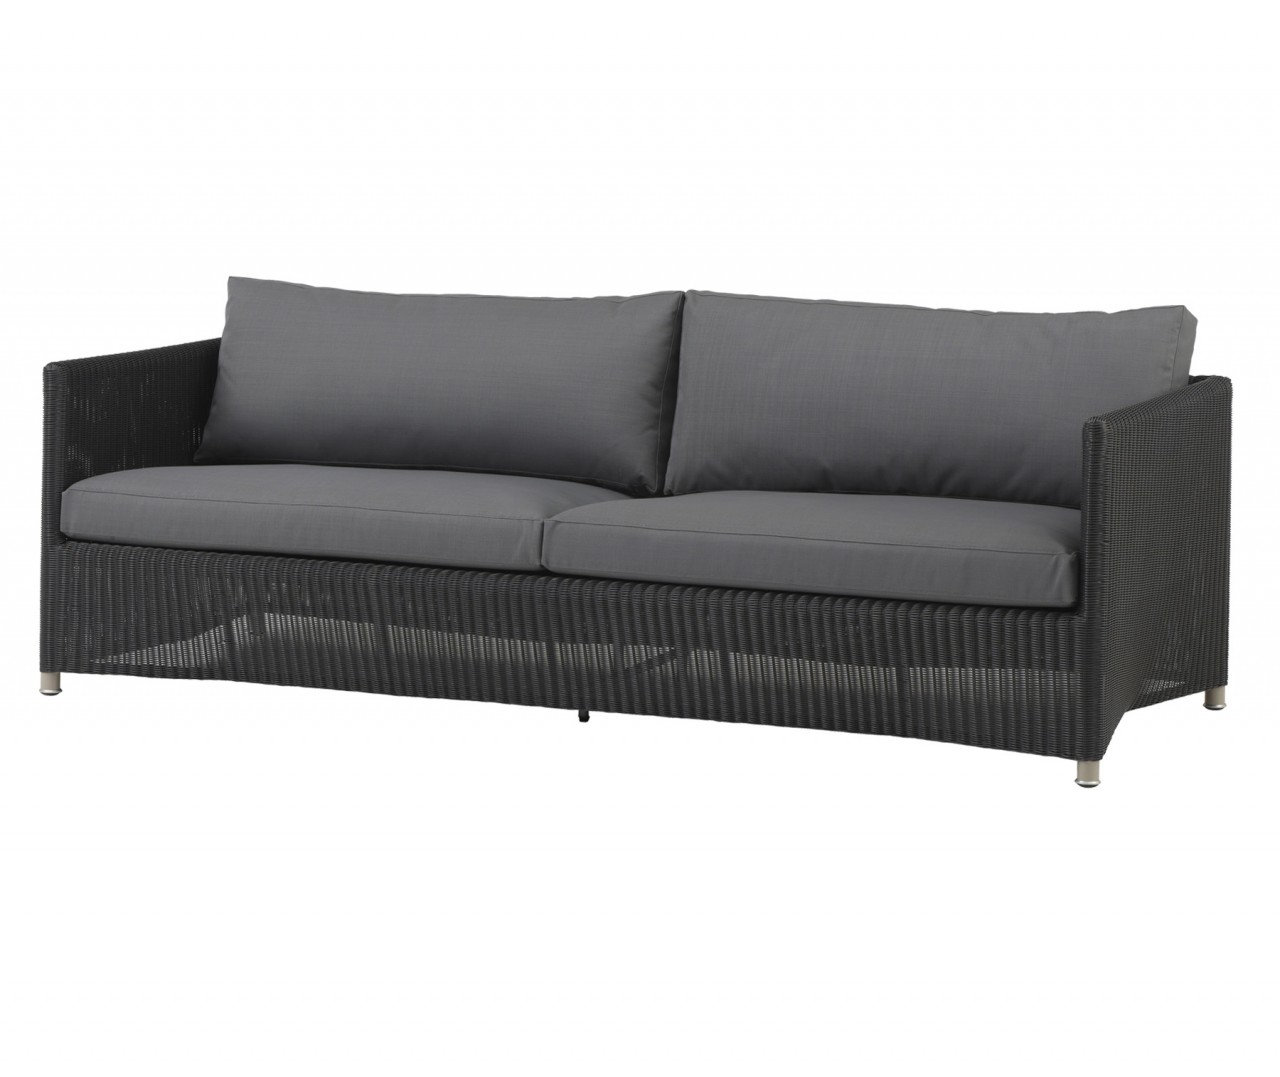 Cane-line Sofa Diamond Lounge